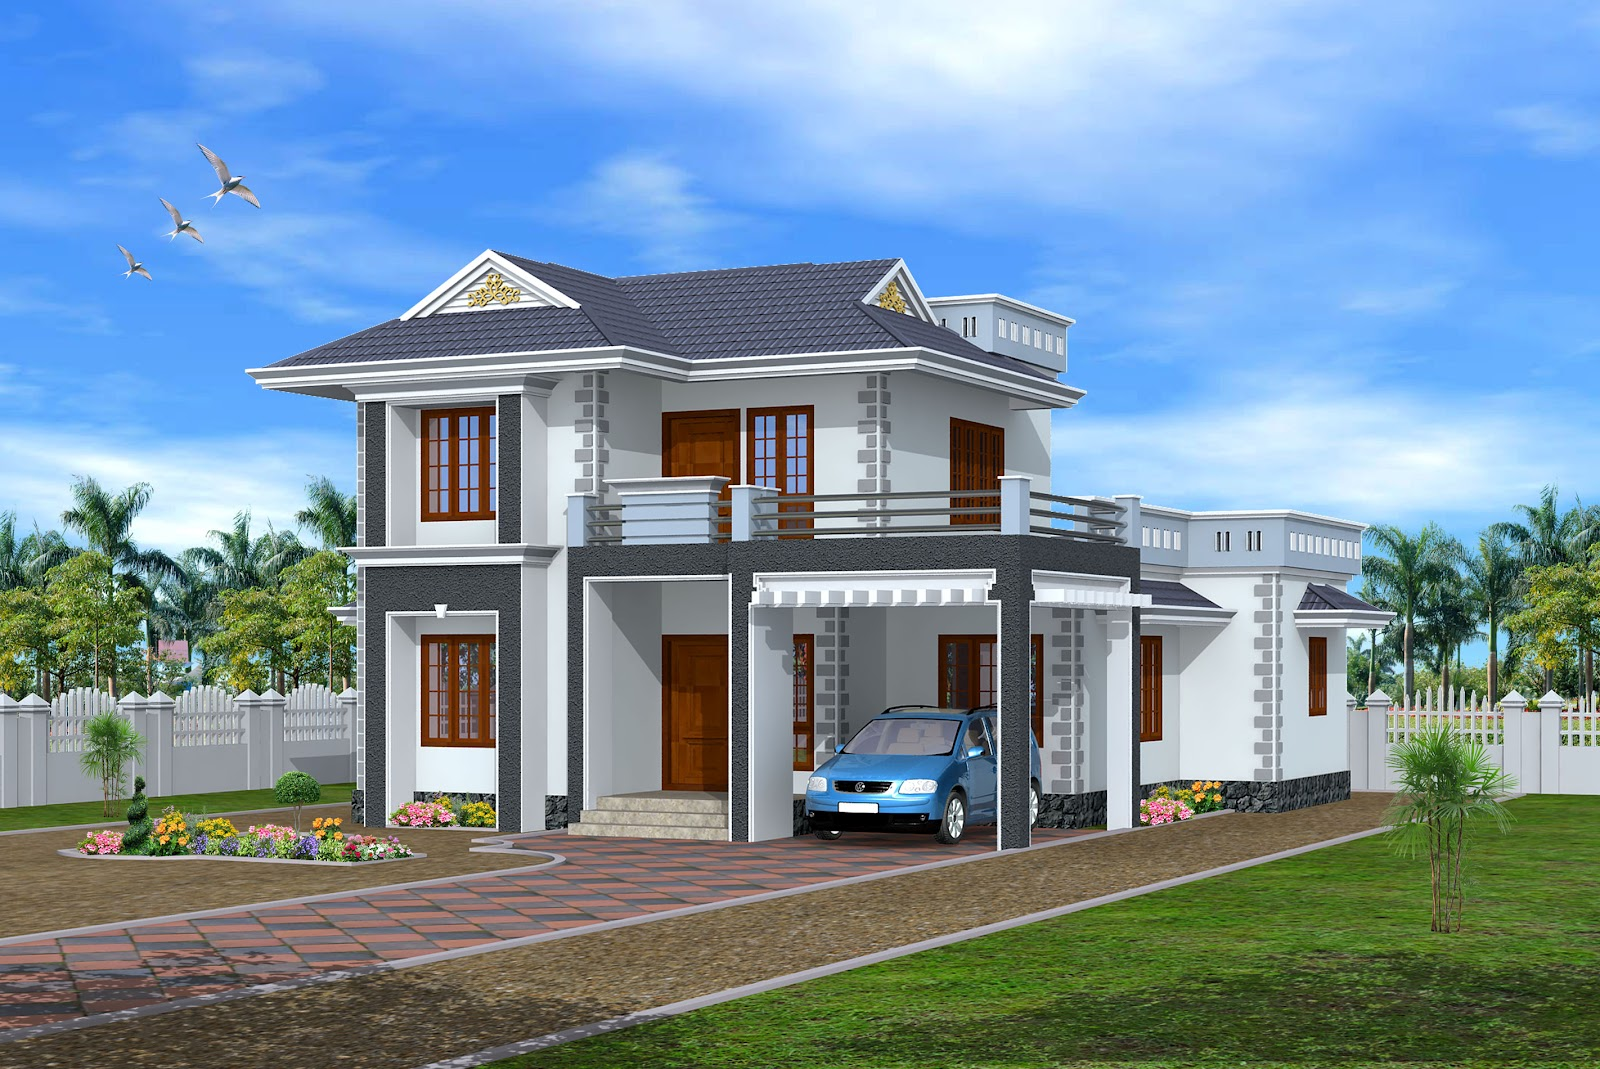 New home designs latest modern homes exterior designs views for Homes designs